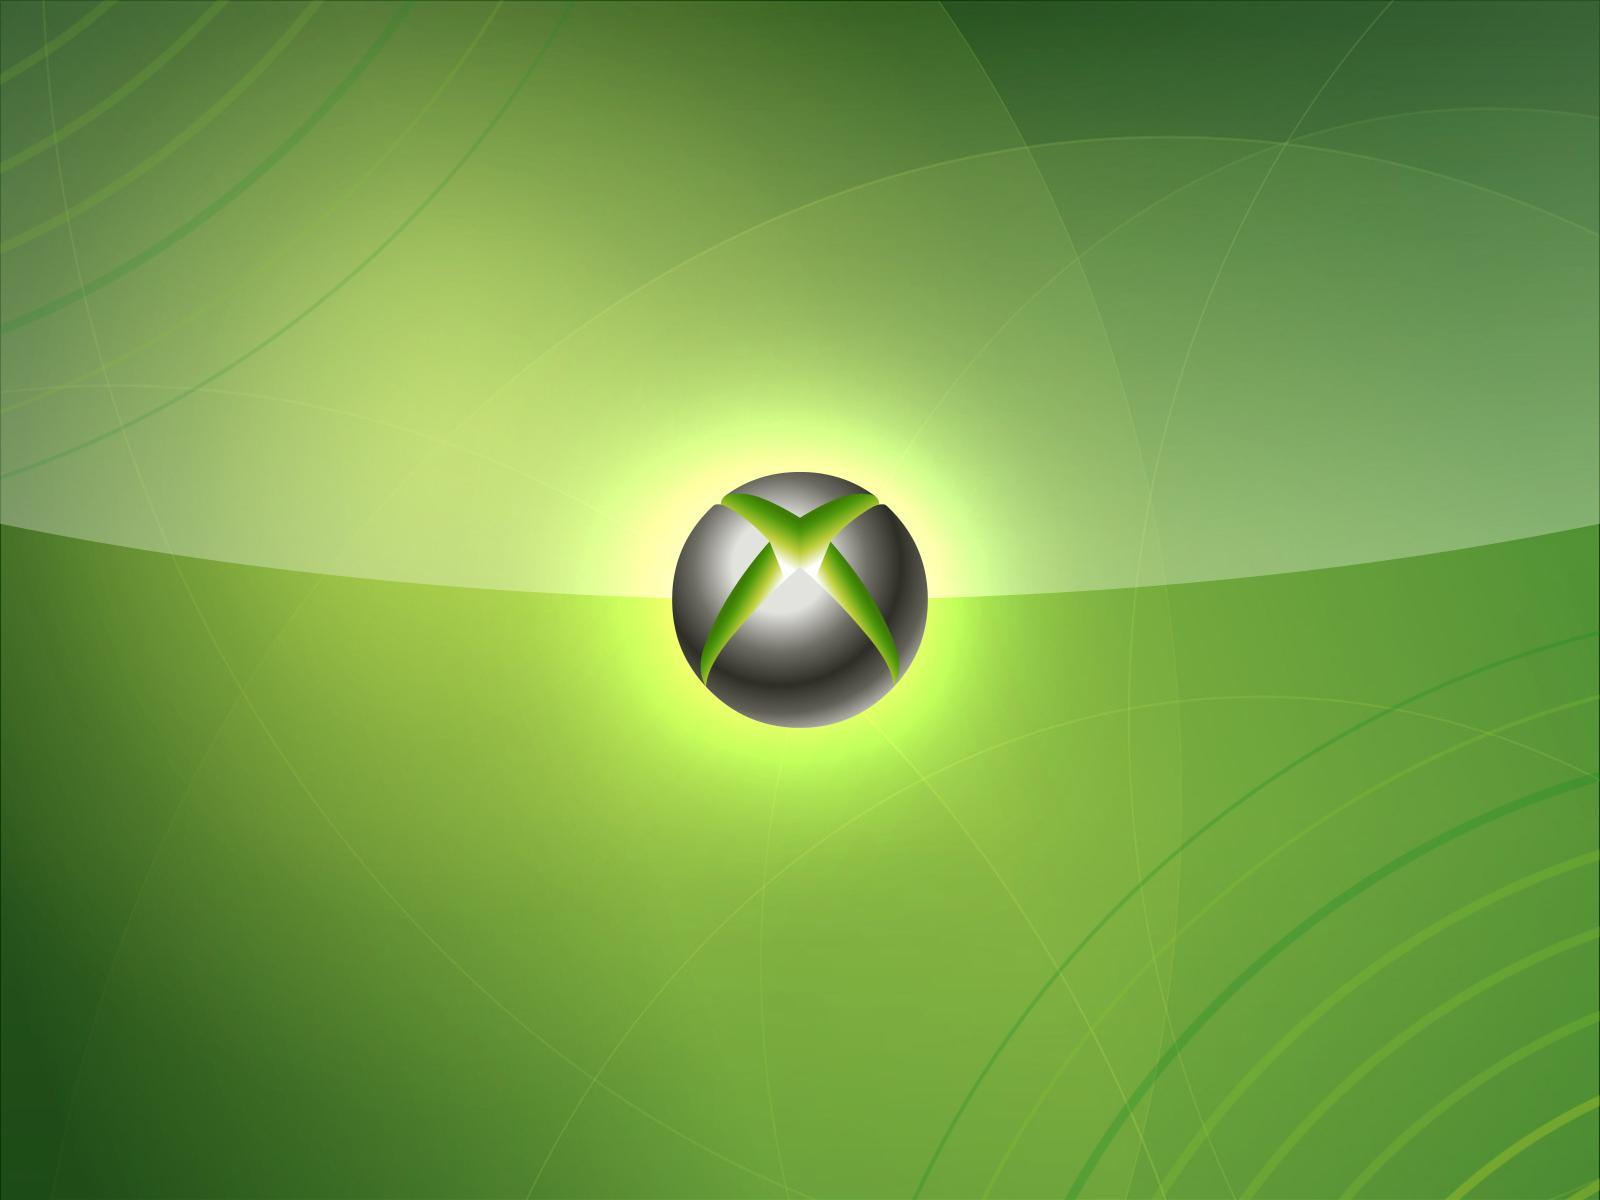 Xbox Logo Wallpapers - Wallpaper Cave